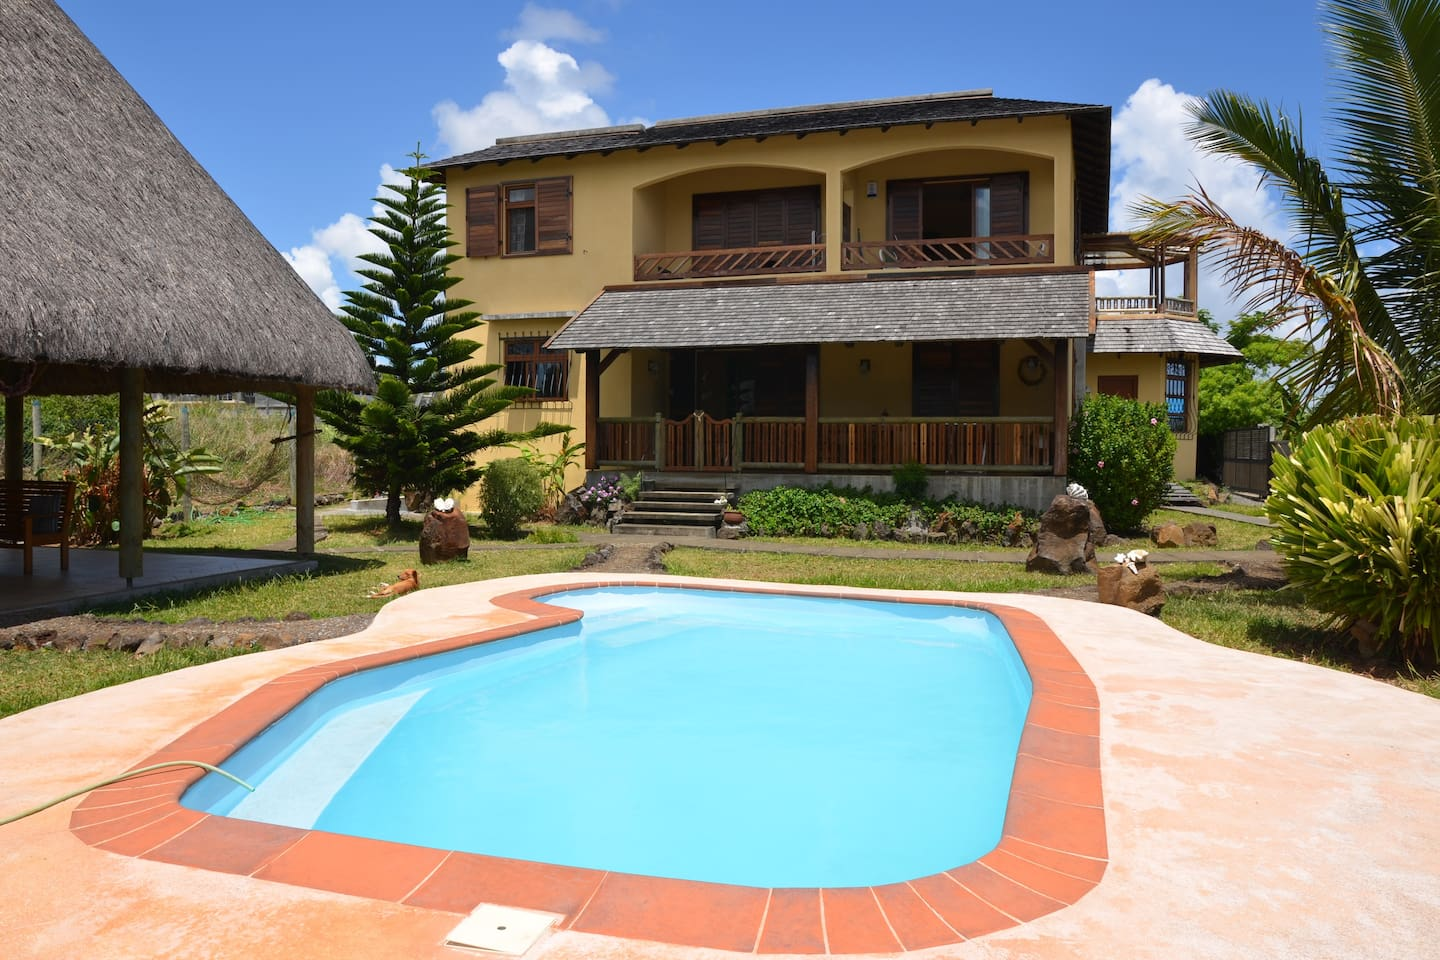 Front house and swimming pool